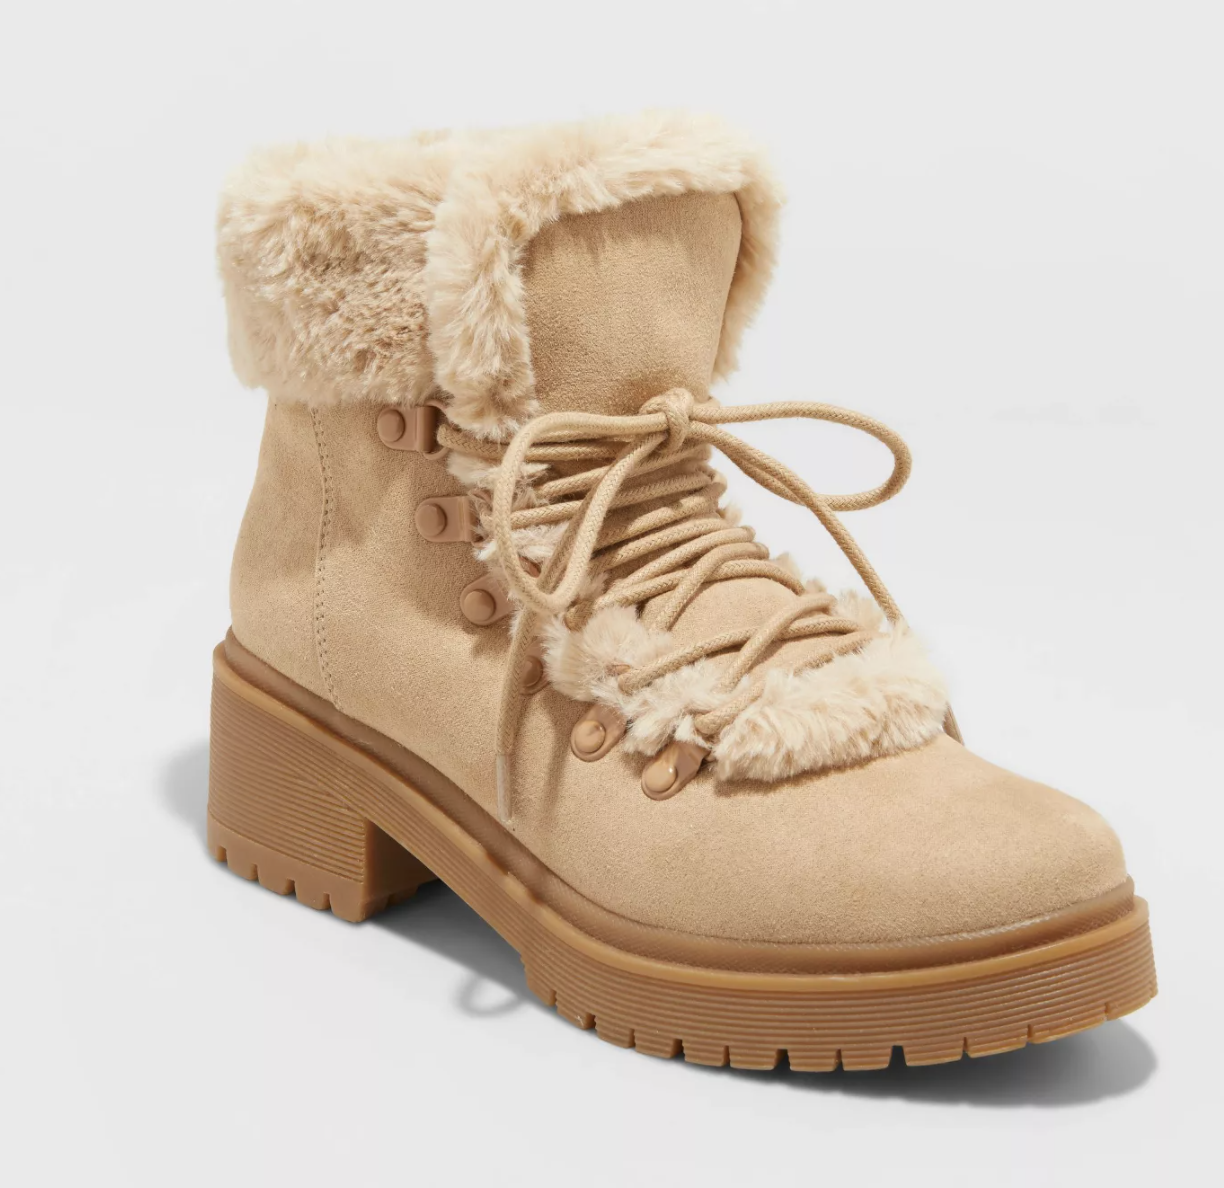 The lace-up furry tan suede boots with a thick rubber sole